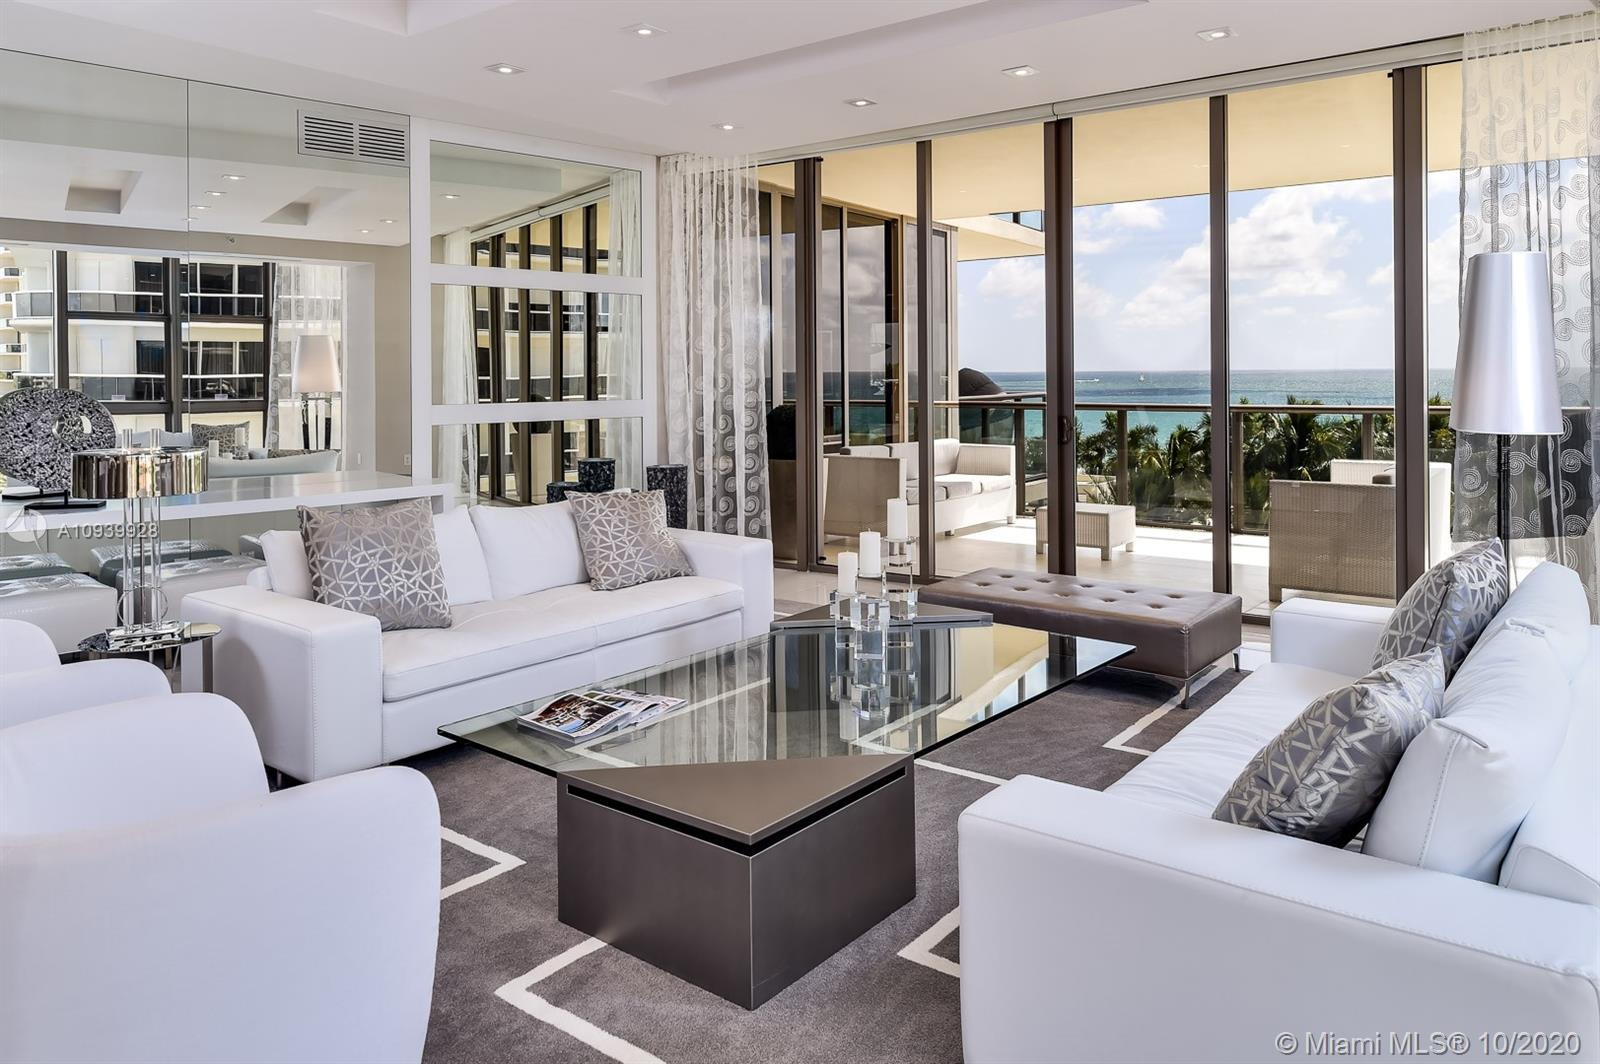 Spectacular residence in one of Miami's most sought after buildings -- St. Regis Bal Harbour. Coveted south tower southeast/southwest flow-through floor plan offers the best of views with three terraces facing sunrise and sunset. Flawless customization and interior design elements throughout including double-size kitchen with extensive high-end appliances, all at the highest level, will leave you breathless. Stunning views along with a modern, stylish design and 5-star resort style amenities paint the details of comfort and luxury made easy.